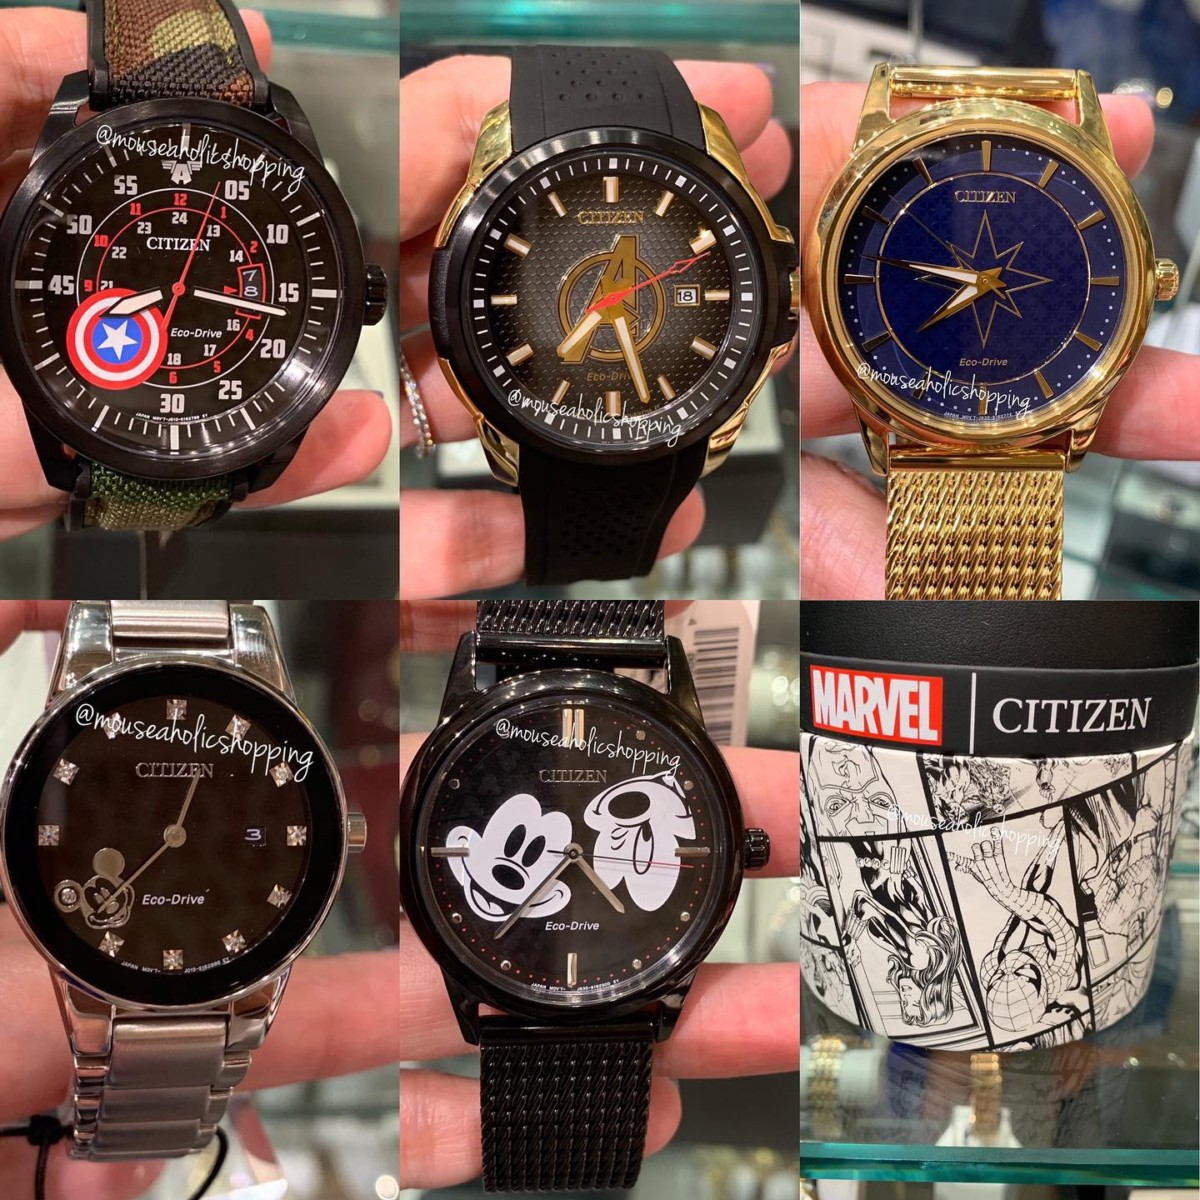 These new watches are infused with Marvel super powers and our favorite Mickey Mouse 24